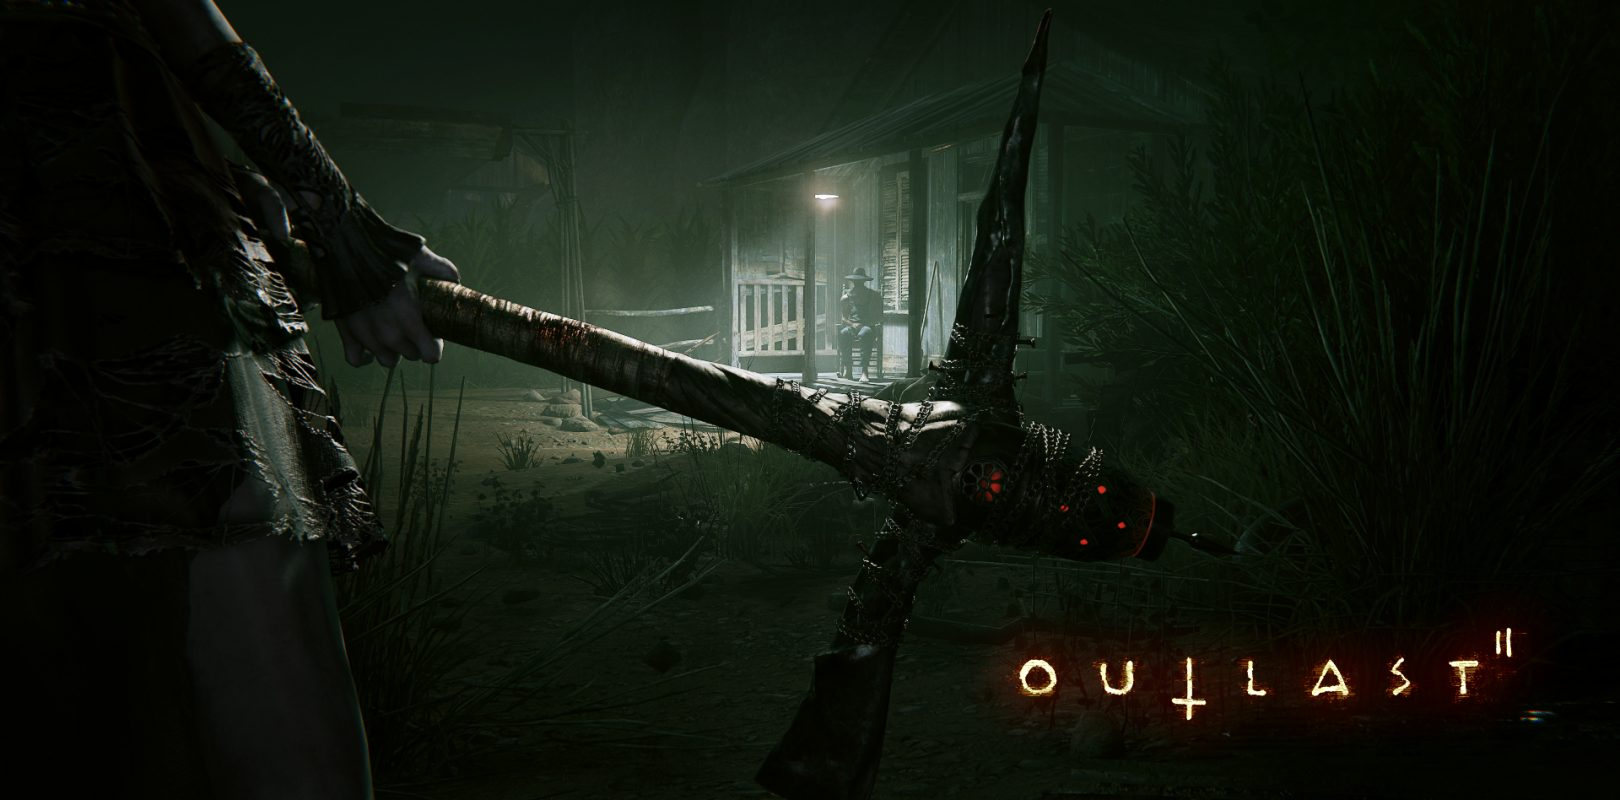 Outlast free download [full game, no demo! ] [all languages] youtube.